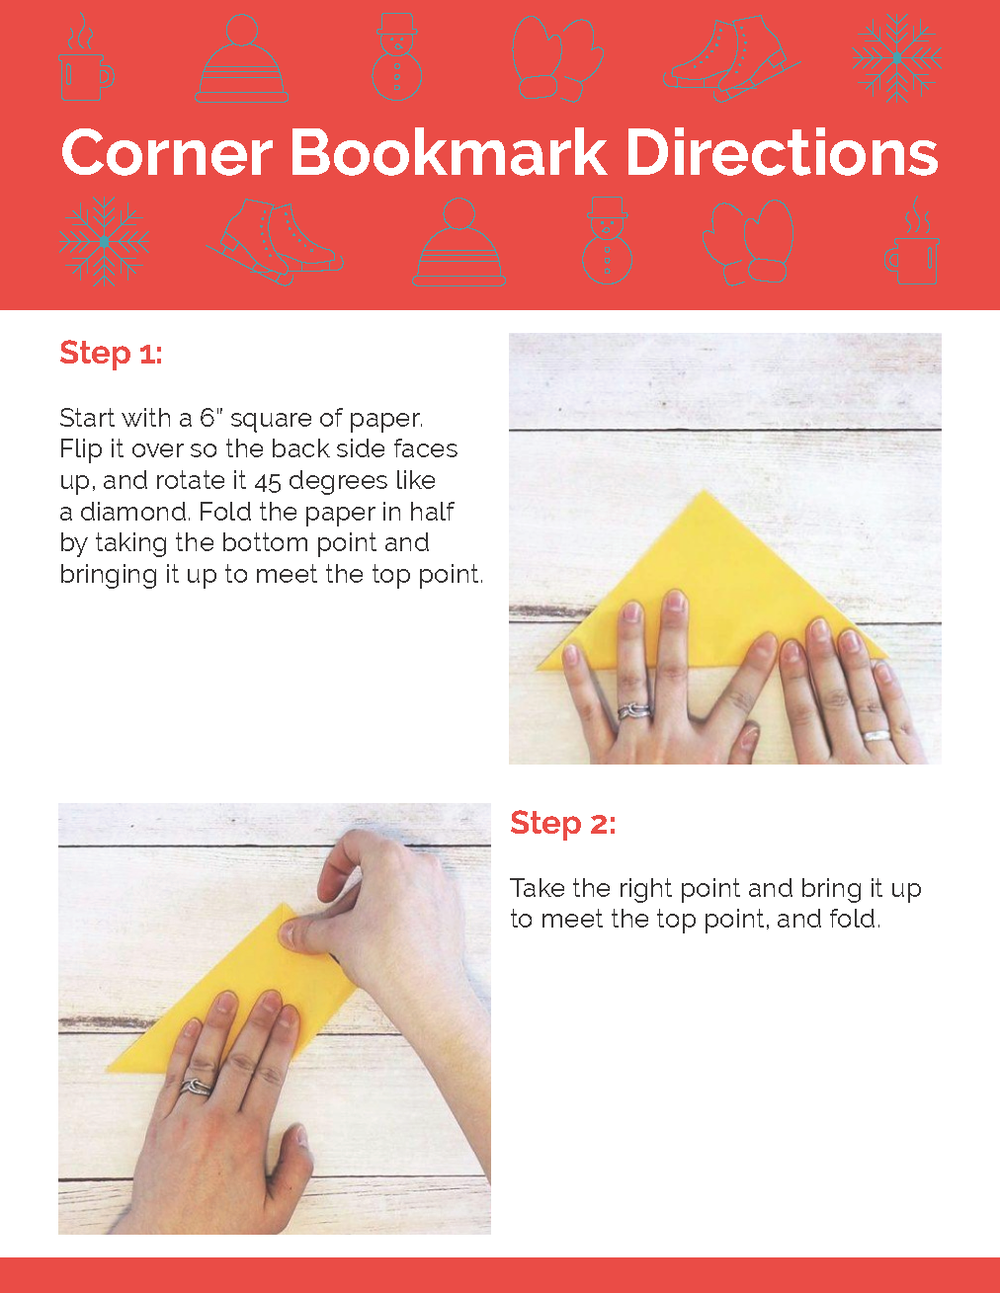 Winter Warmer_Corner Bookmark Directions_Page_1.png